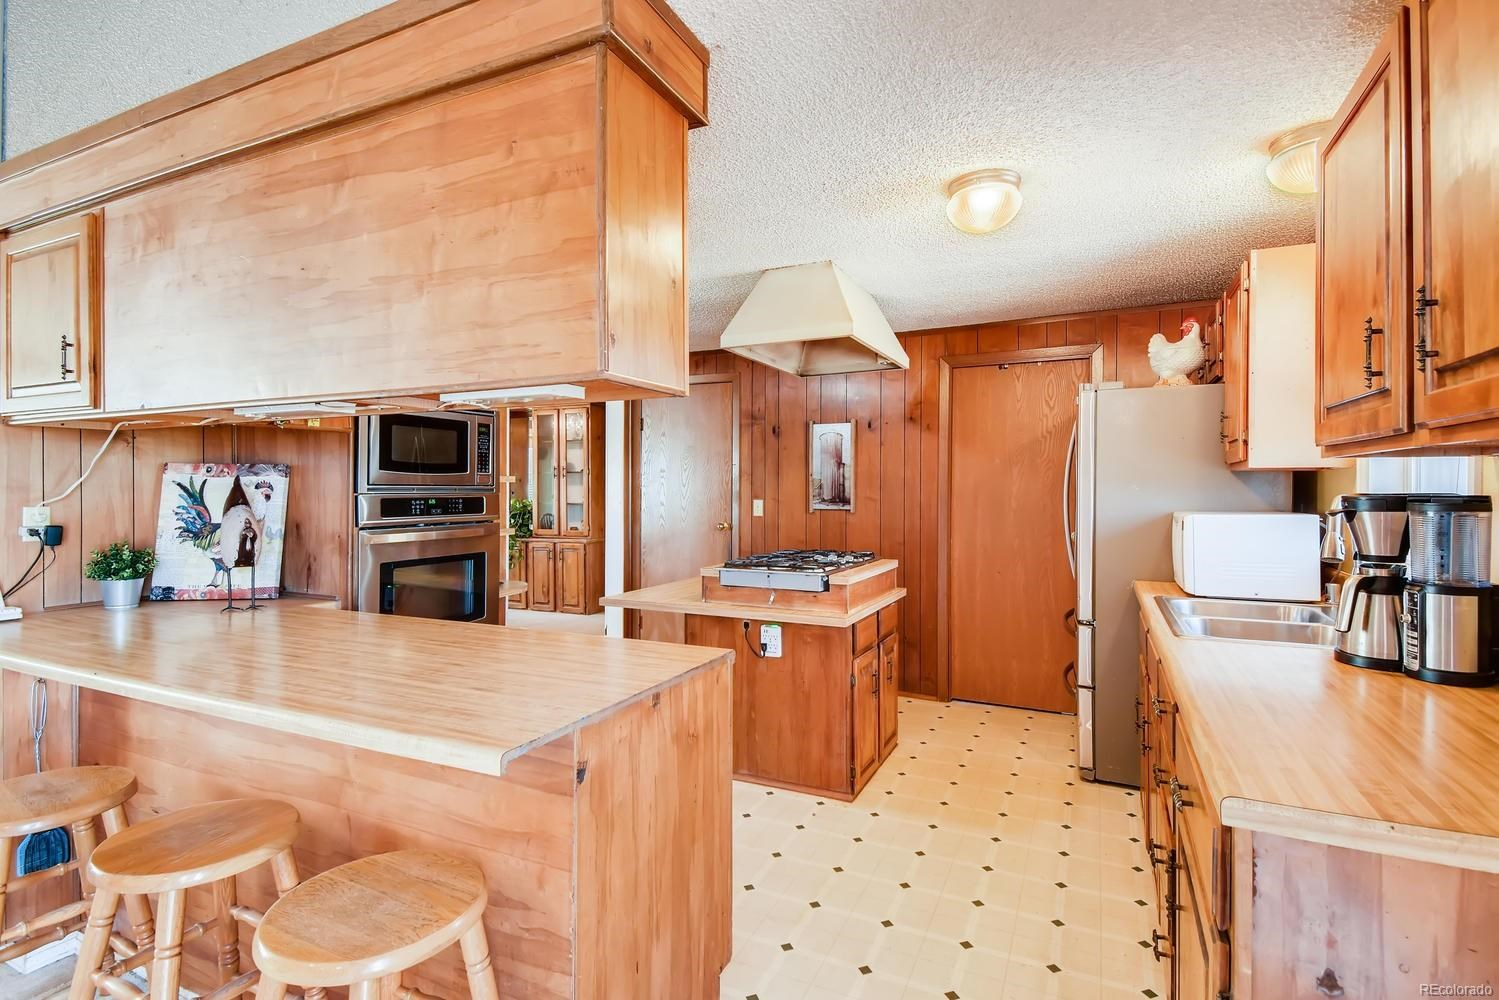 MLS# 9088578 - 9 - 15465 Good Avenue, Fort Lupton, CO 80621